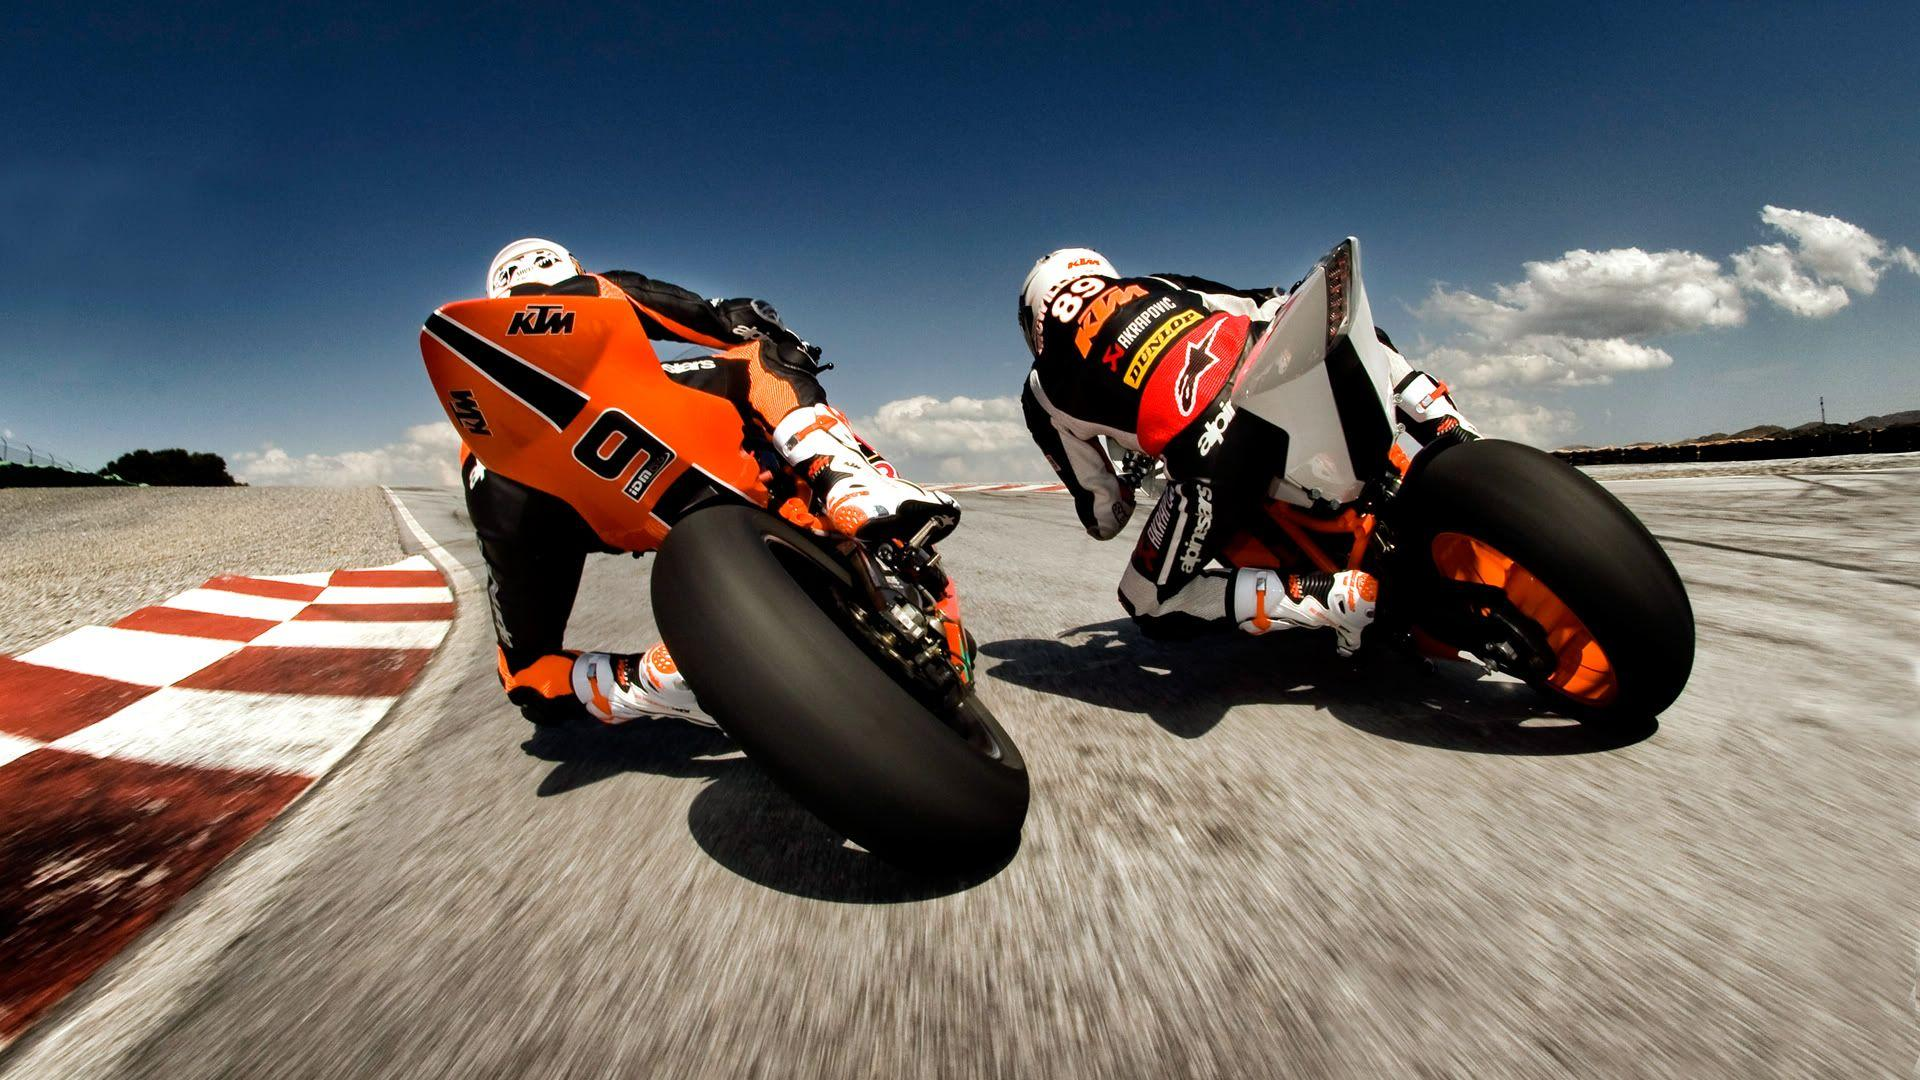 KTM Motorcycles HD Wallpapers, Free Wallaper Downloads, KTM Sport